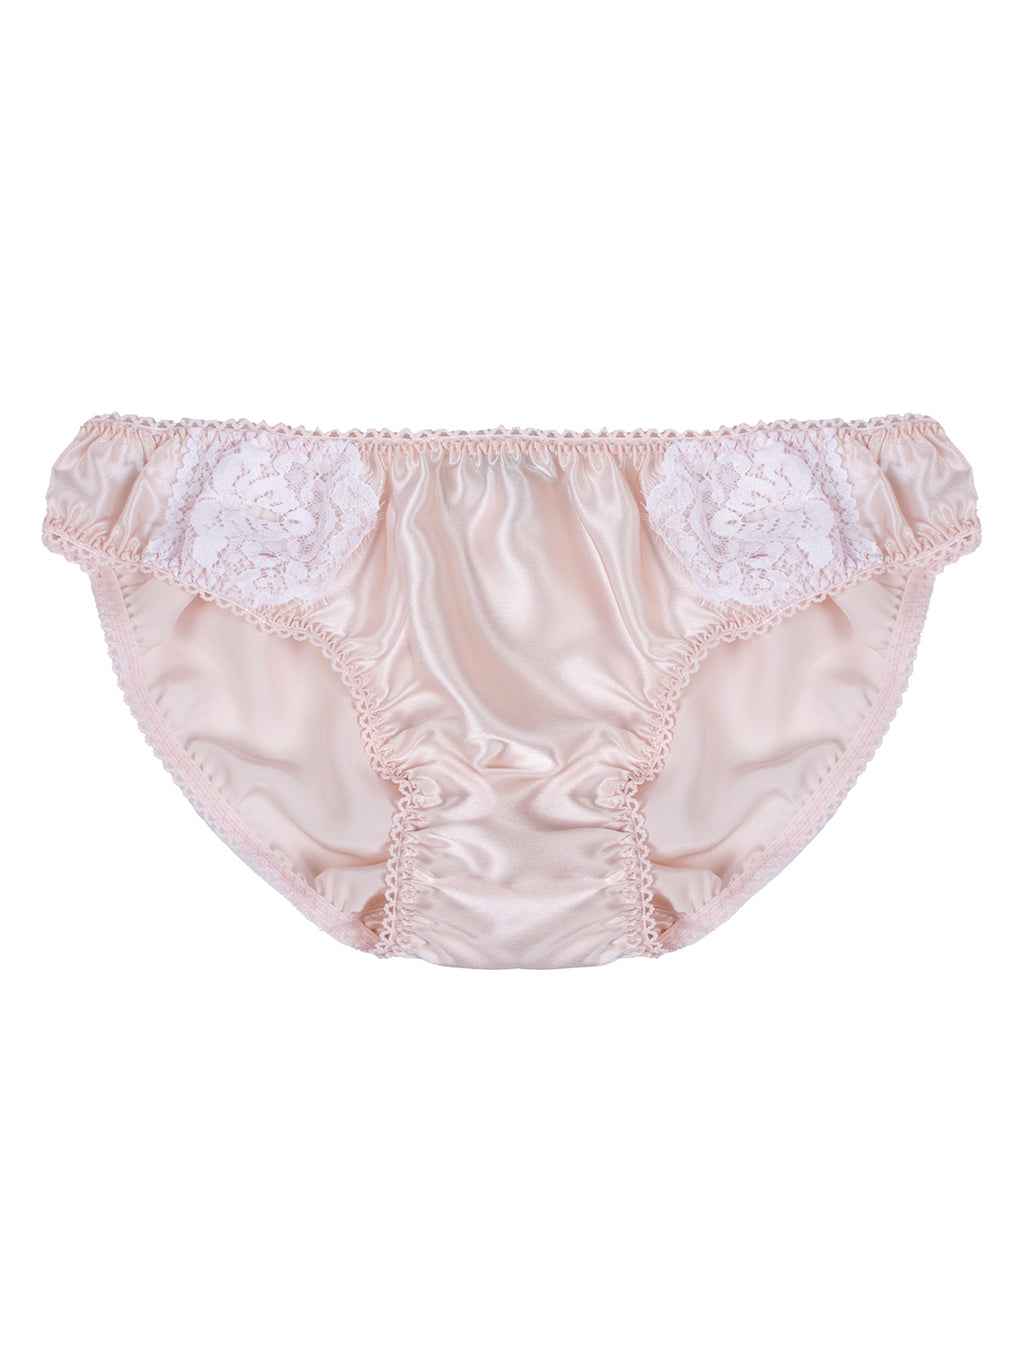 Zoe Blush Silk & Lace Knicker by Ayten Gasson